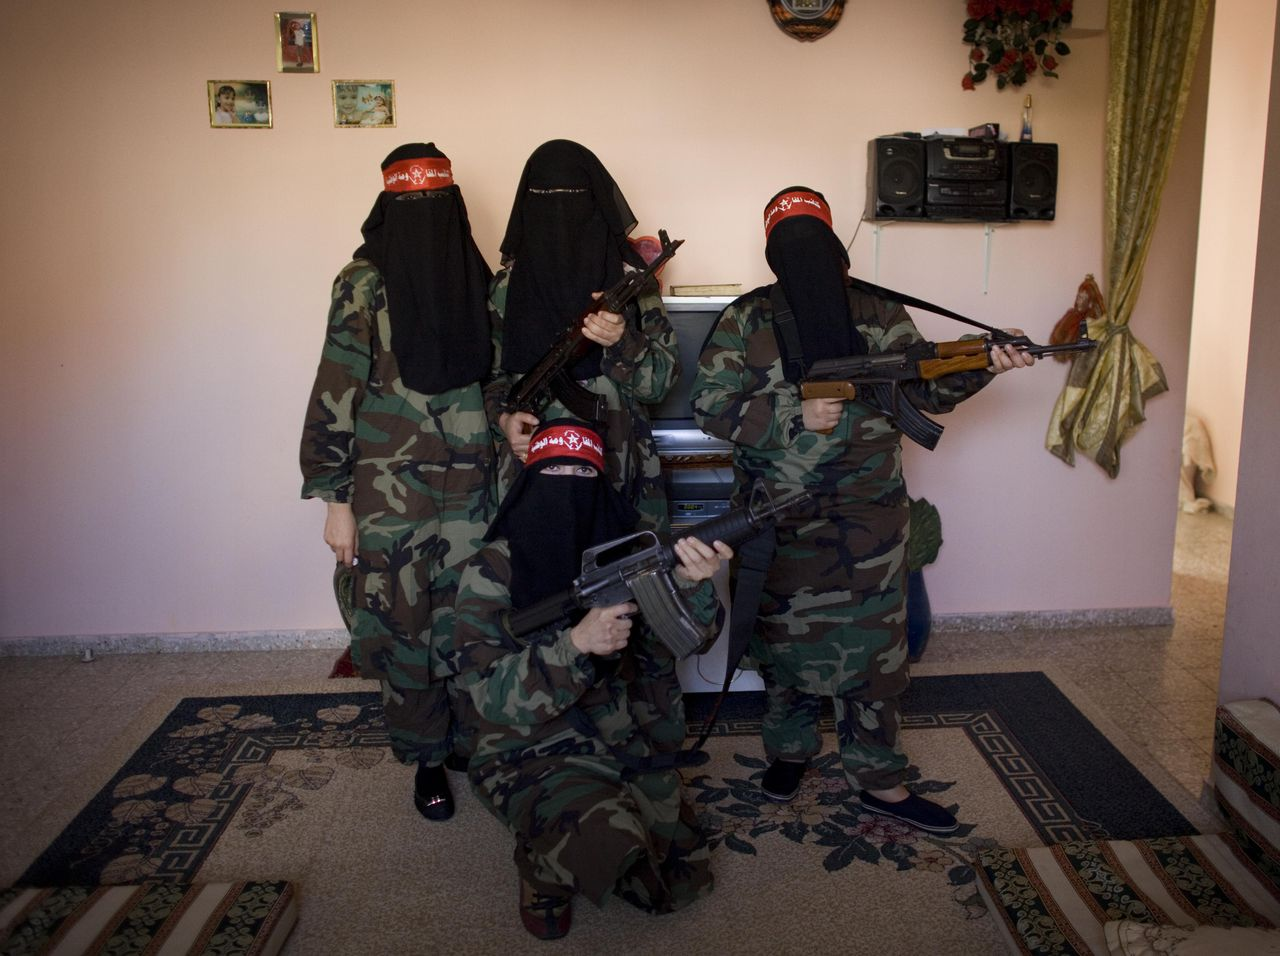 Naveen, left, Shareen, right, Wafaah, center, and Omm Ahmed, women militants for the Democratic Front for the Liberation of Palestine (DFLP), pose for a portrait in a house of a fellow fighter, in the Gaza Strip, Thursday, Nov. 12, 2009. Founded in 1969 the DFLP is a Palestinian Marxist-Leninist, secular political and military organization. Approximately 40 women militants for the DFLP started training 6 months ago as a response to Israel's January offensive. They range in age from 17 to 53 and many are married with children. (AP Photo/ Tara Todras-Whitehill